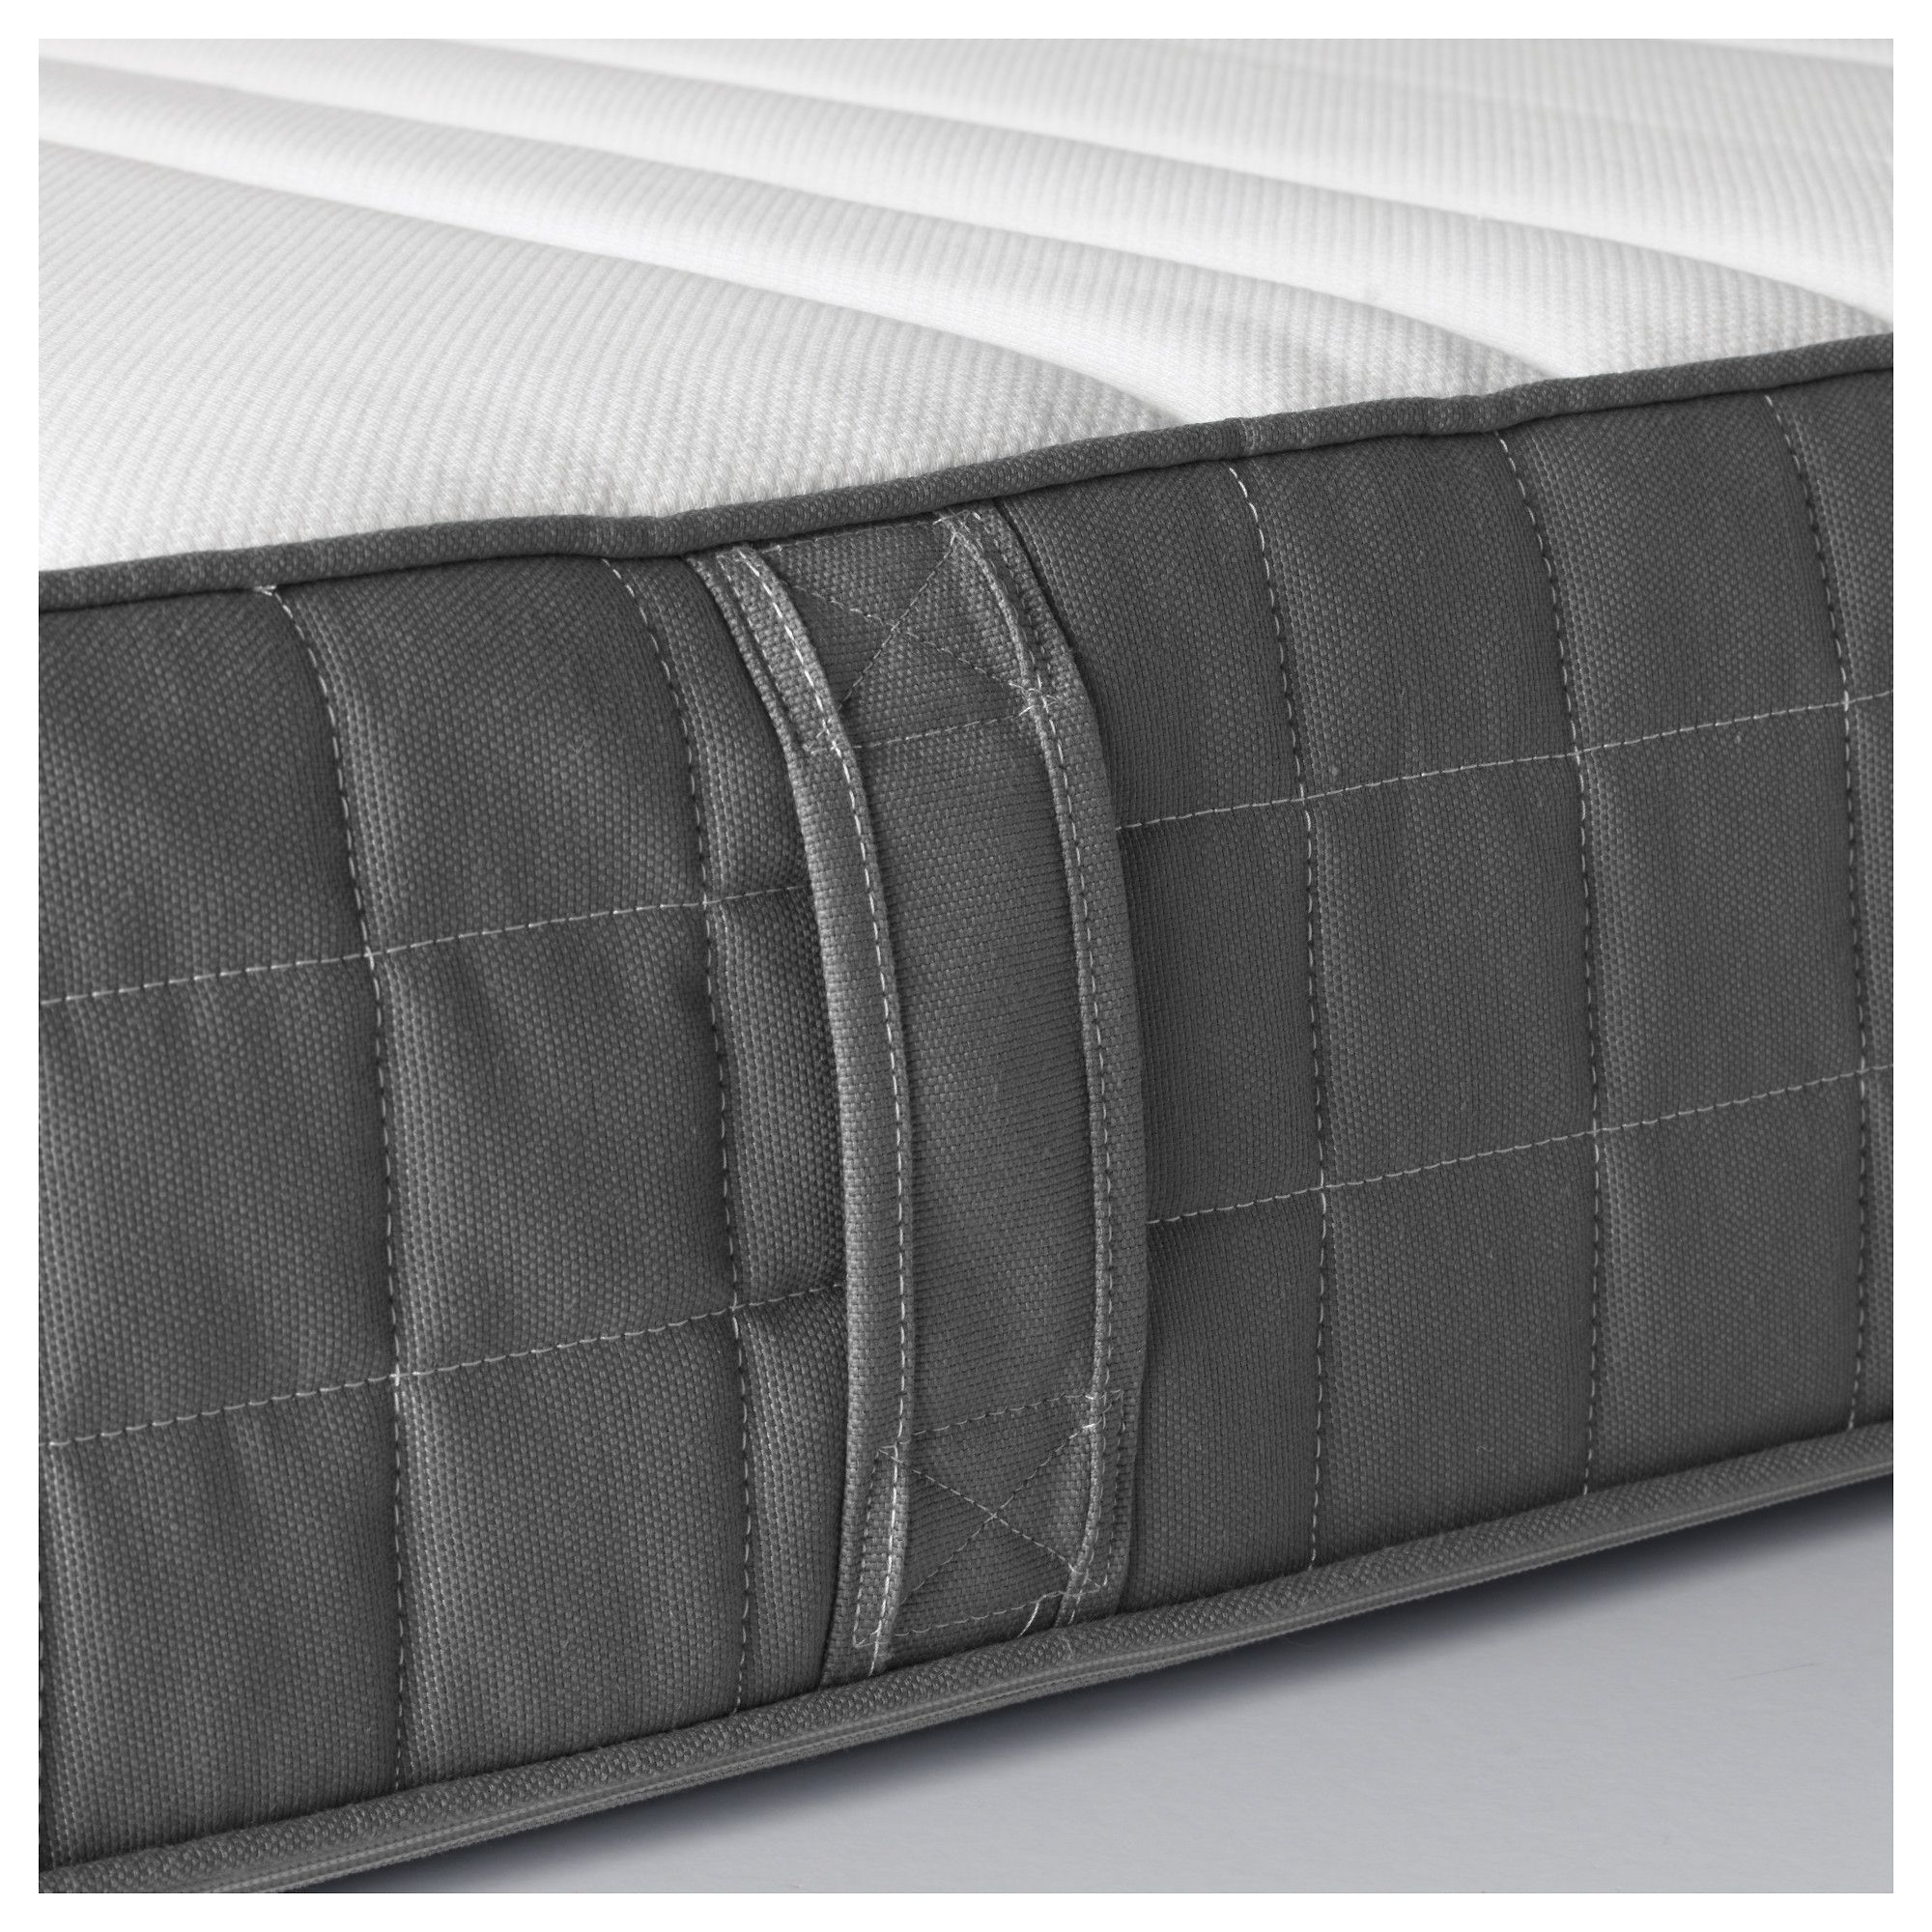 Hovag Mattress Morgedal Schaummatratze Fest Dunkelgrau In 2019 Products